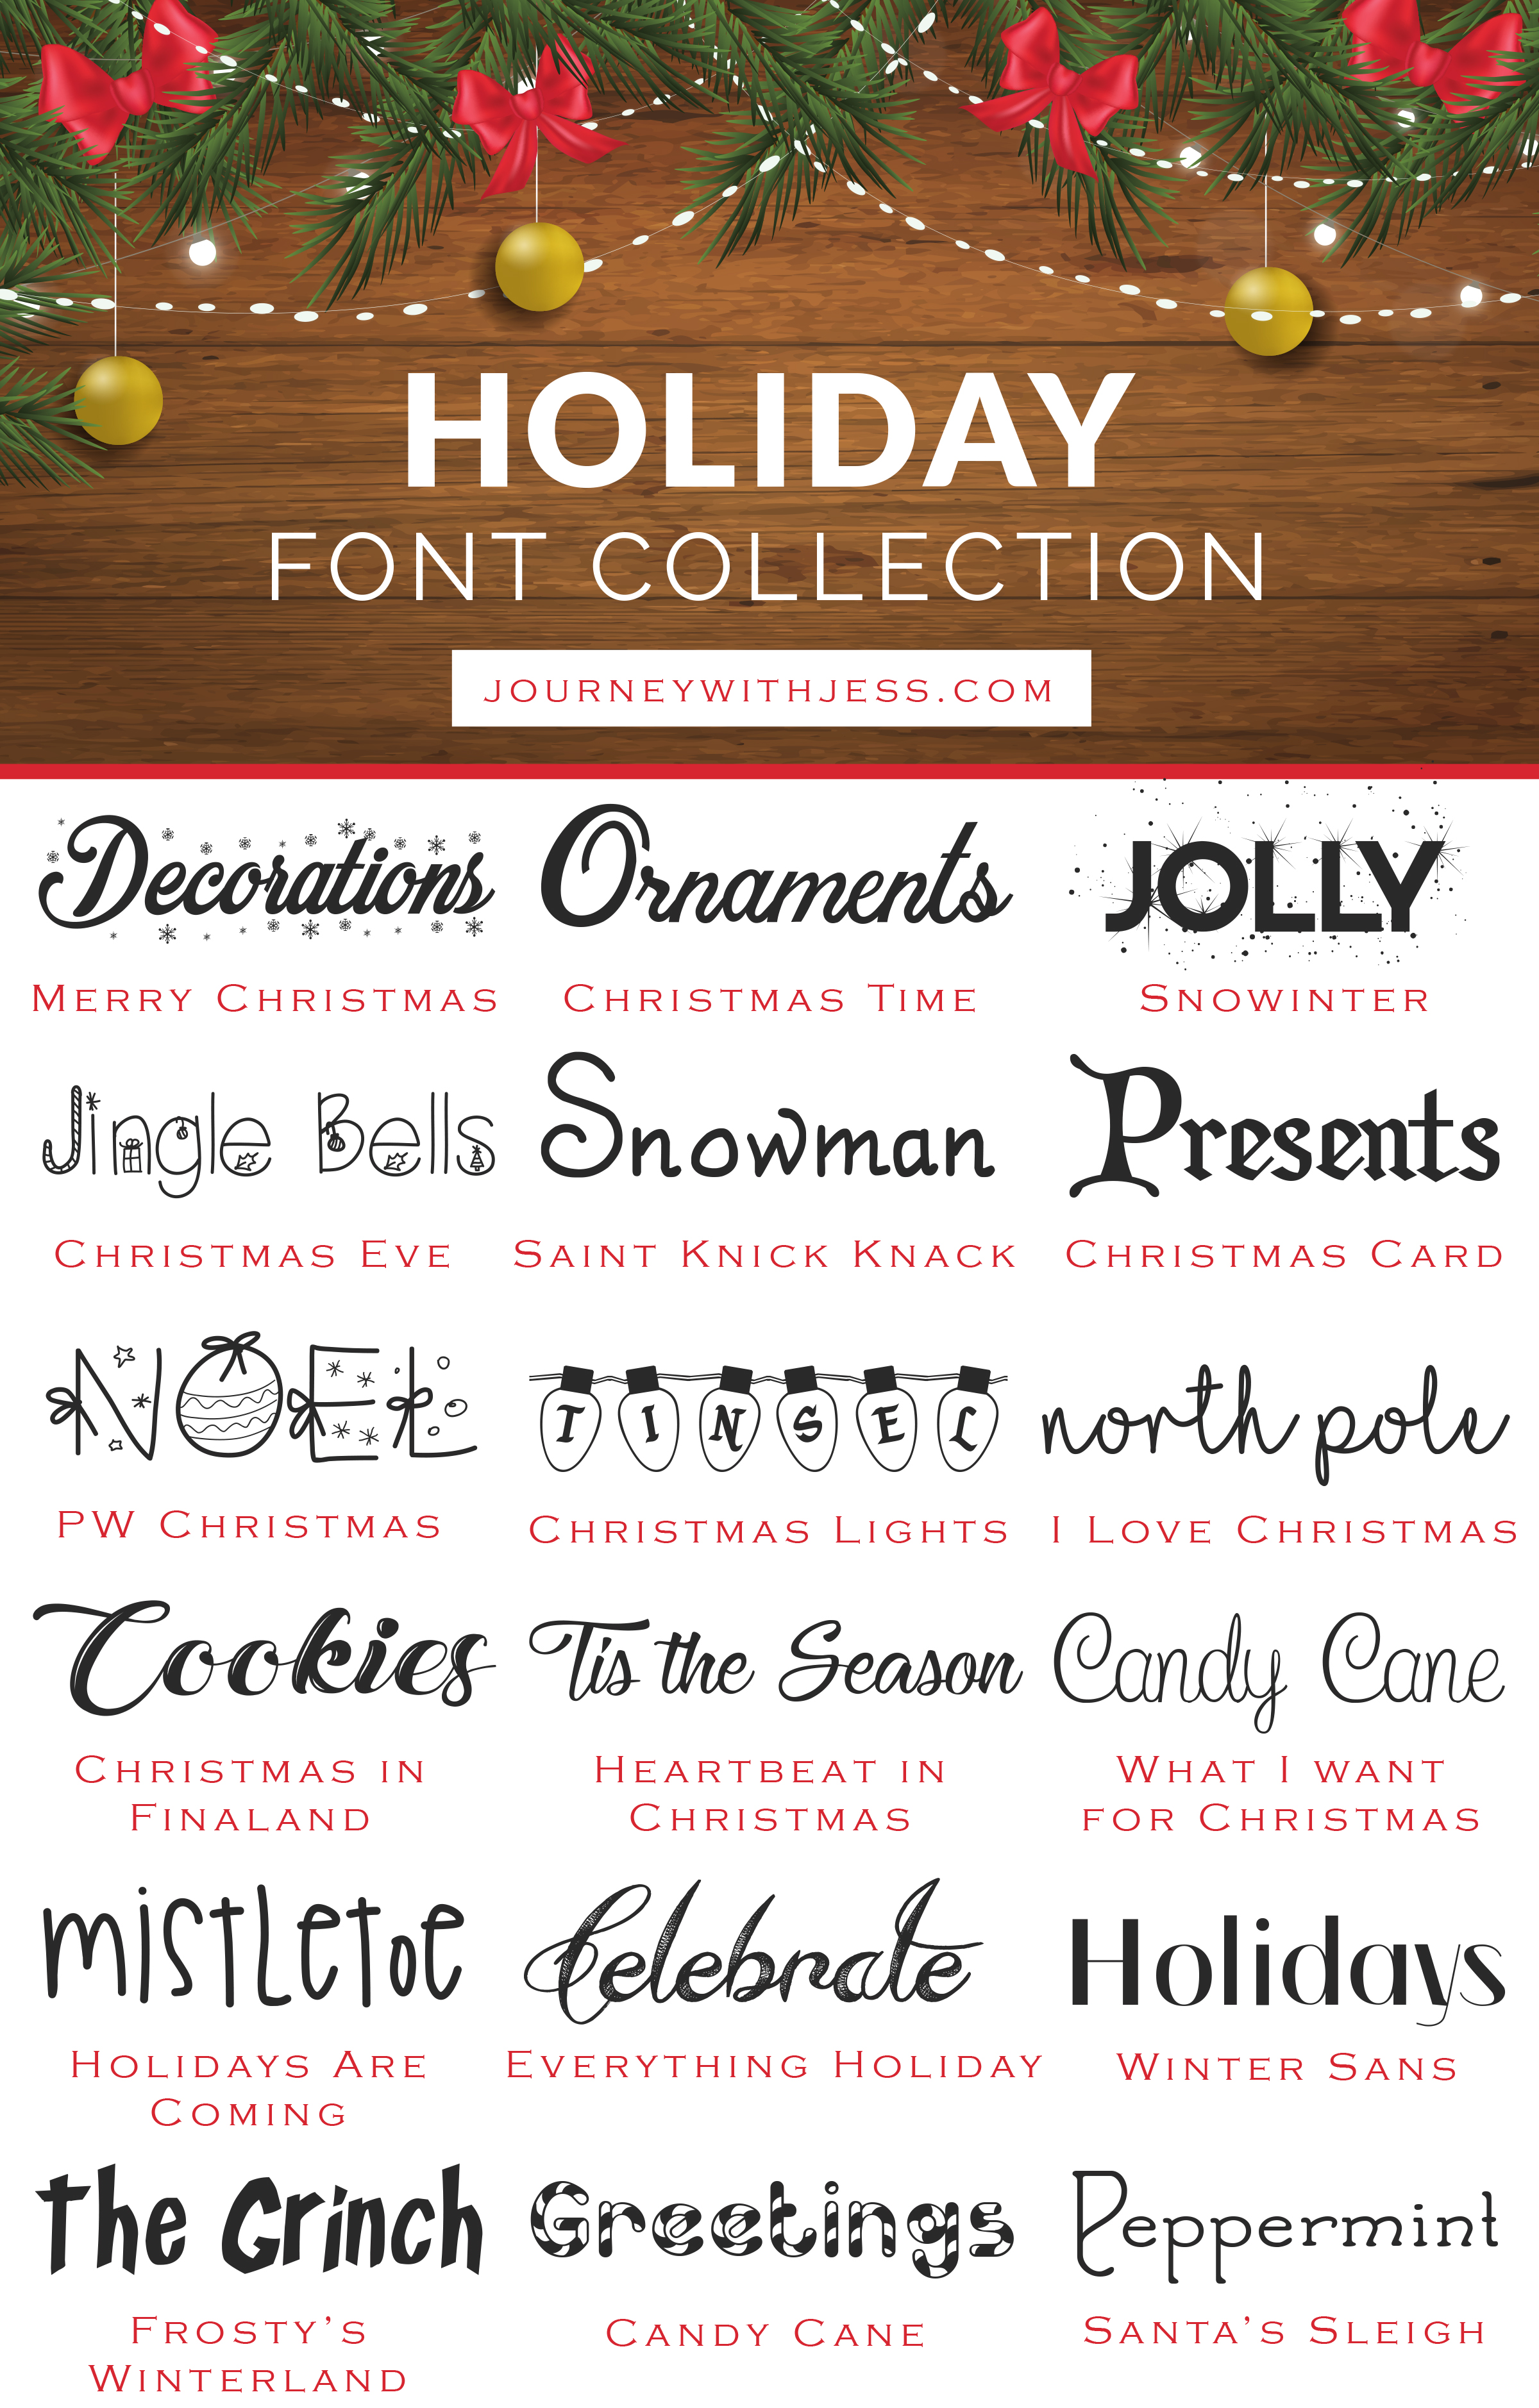 HolidayFontCollection-blogpost